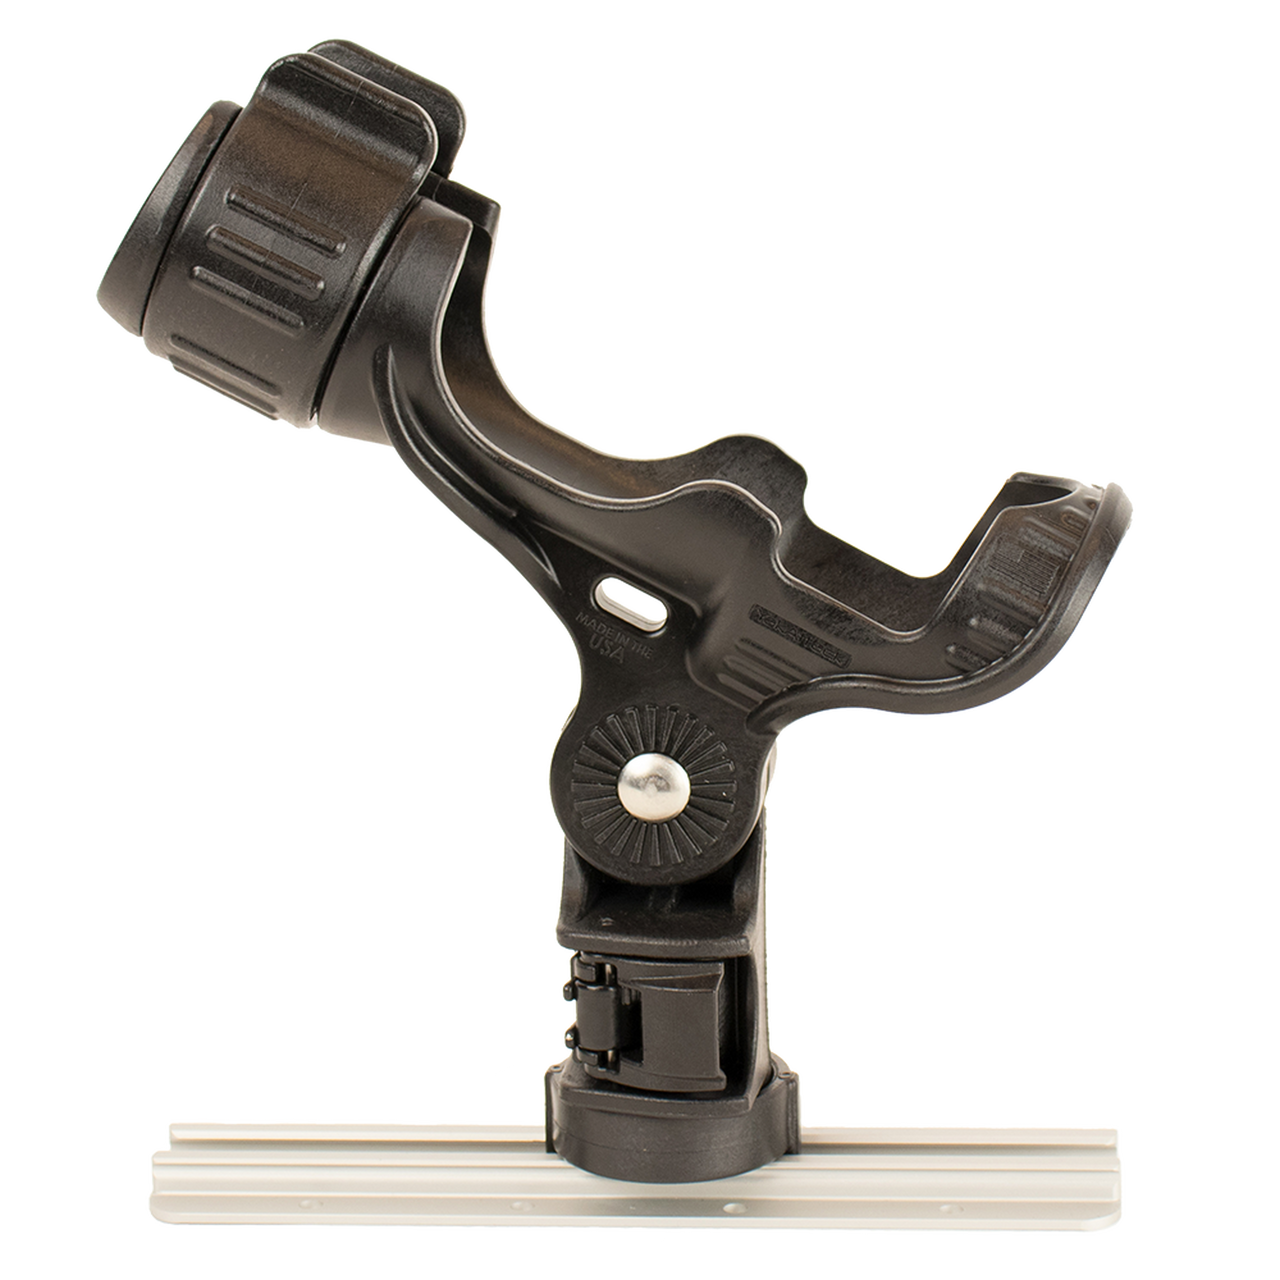 Omega Rod Holder with Track Mounted LockNLoad Mounting System